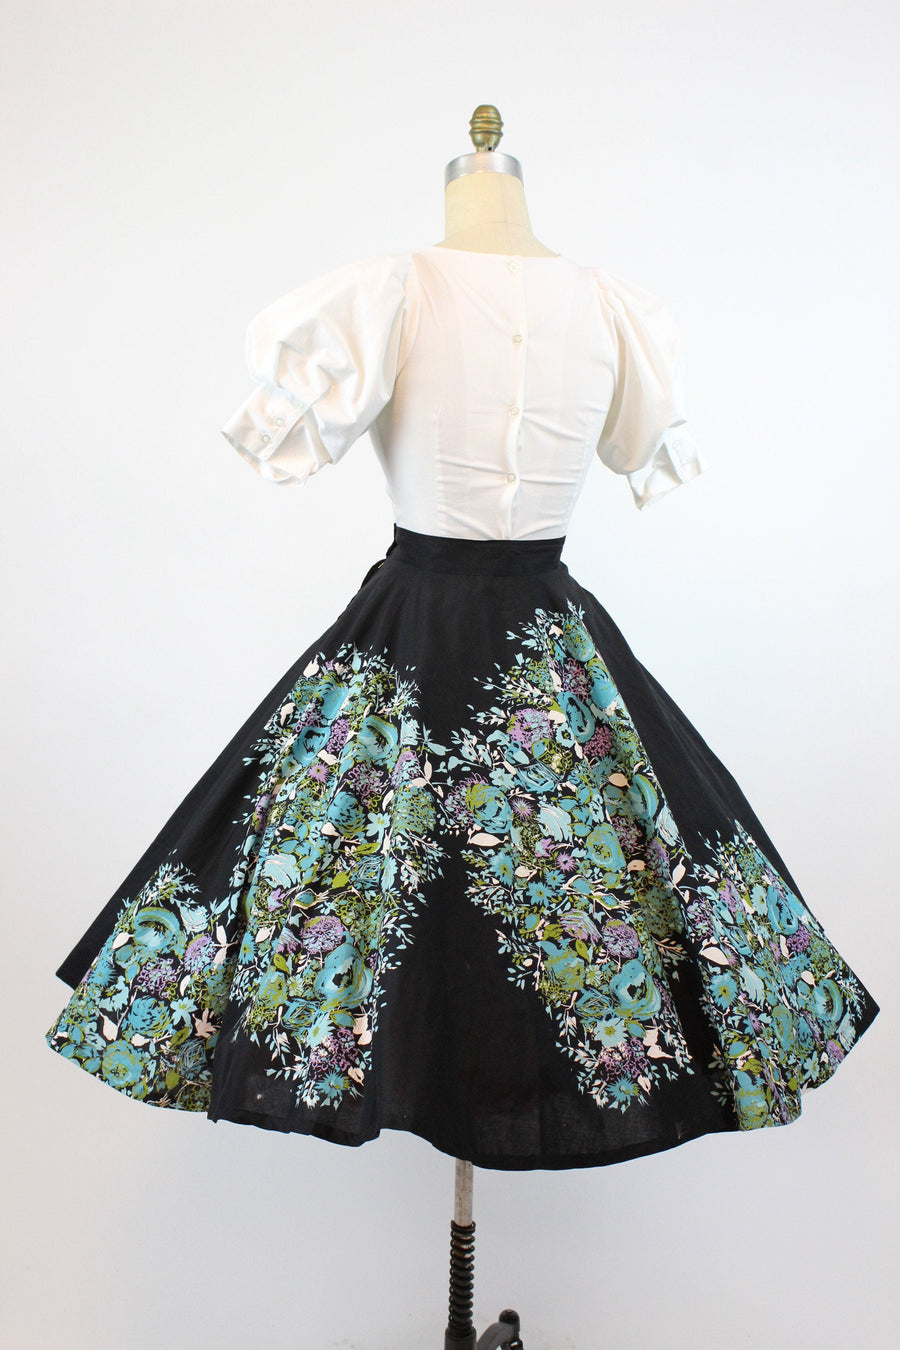 1950s floral circle skirt small | vintage cotton skirt | new in